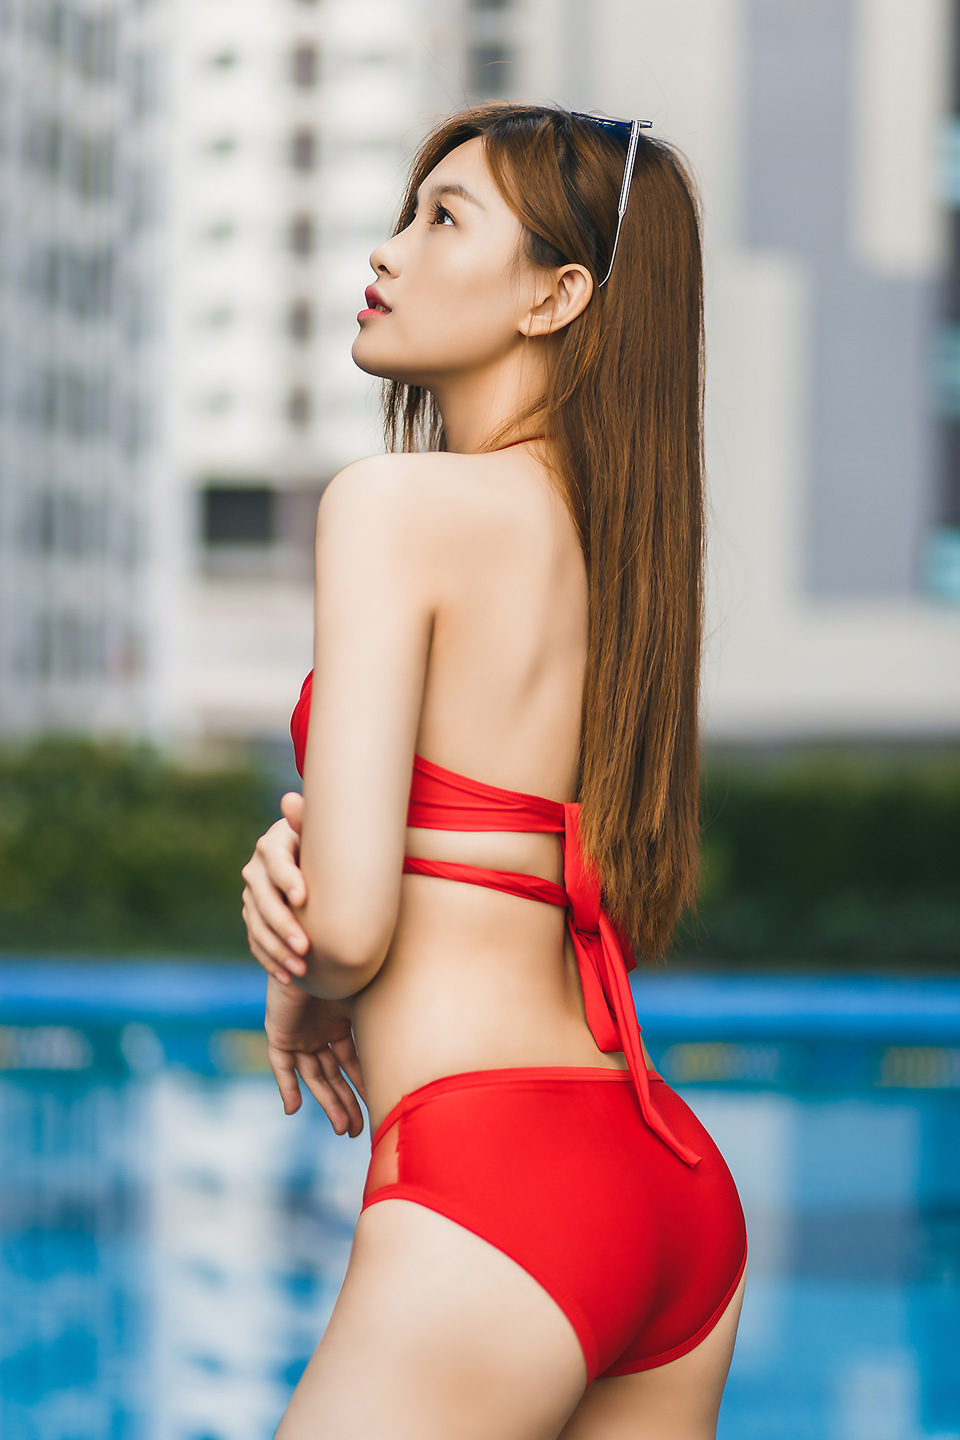 /UserFiles/miss/miss2019/DangThiPhuongThao/dang-thi-phuong-thao-toho (4).jpg